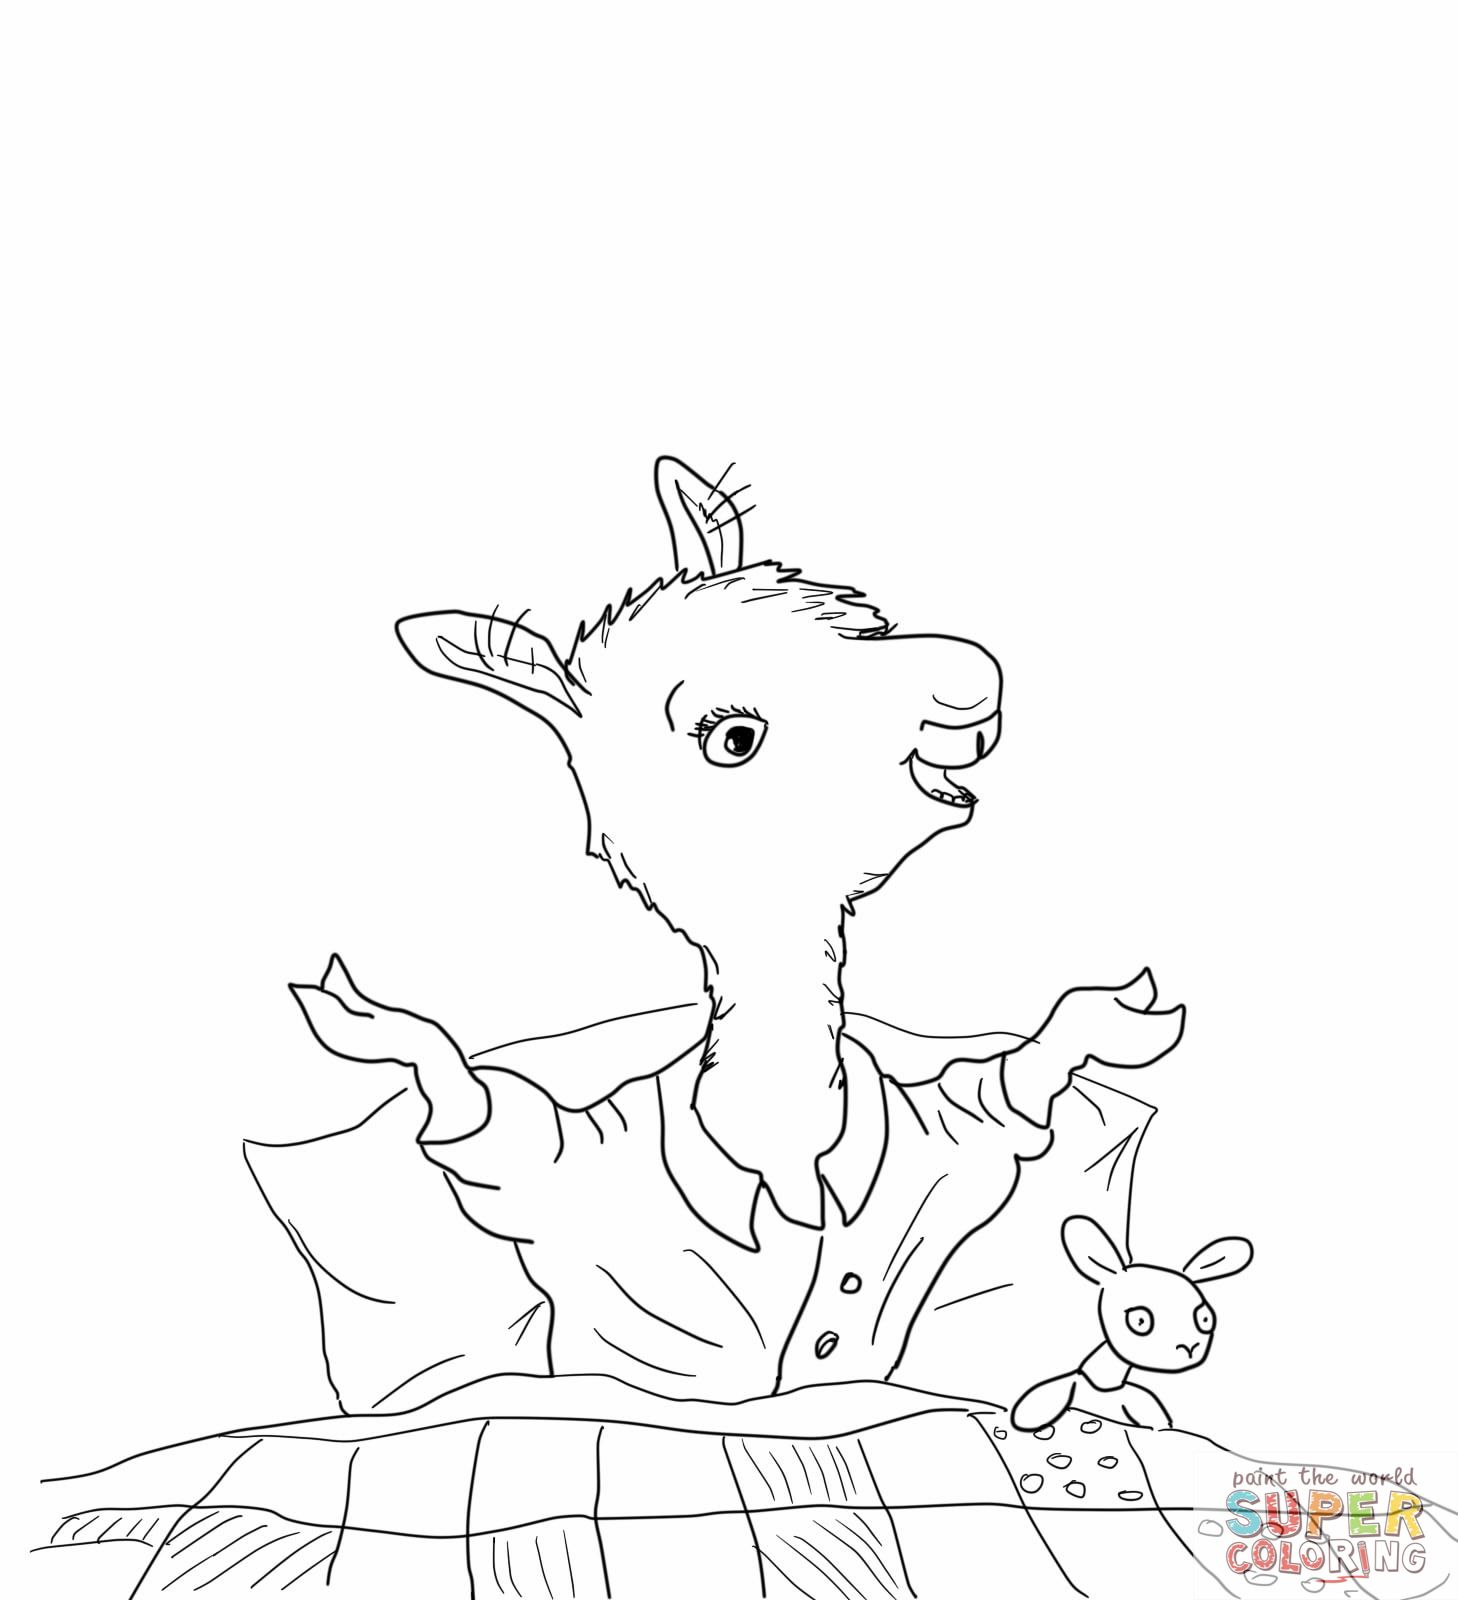 llama llama coloring pages Pin by Amberdenise Puckett on Story Time Crafts | Preschool, Llama  llama llama coloring pages